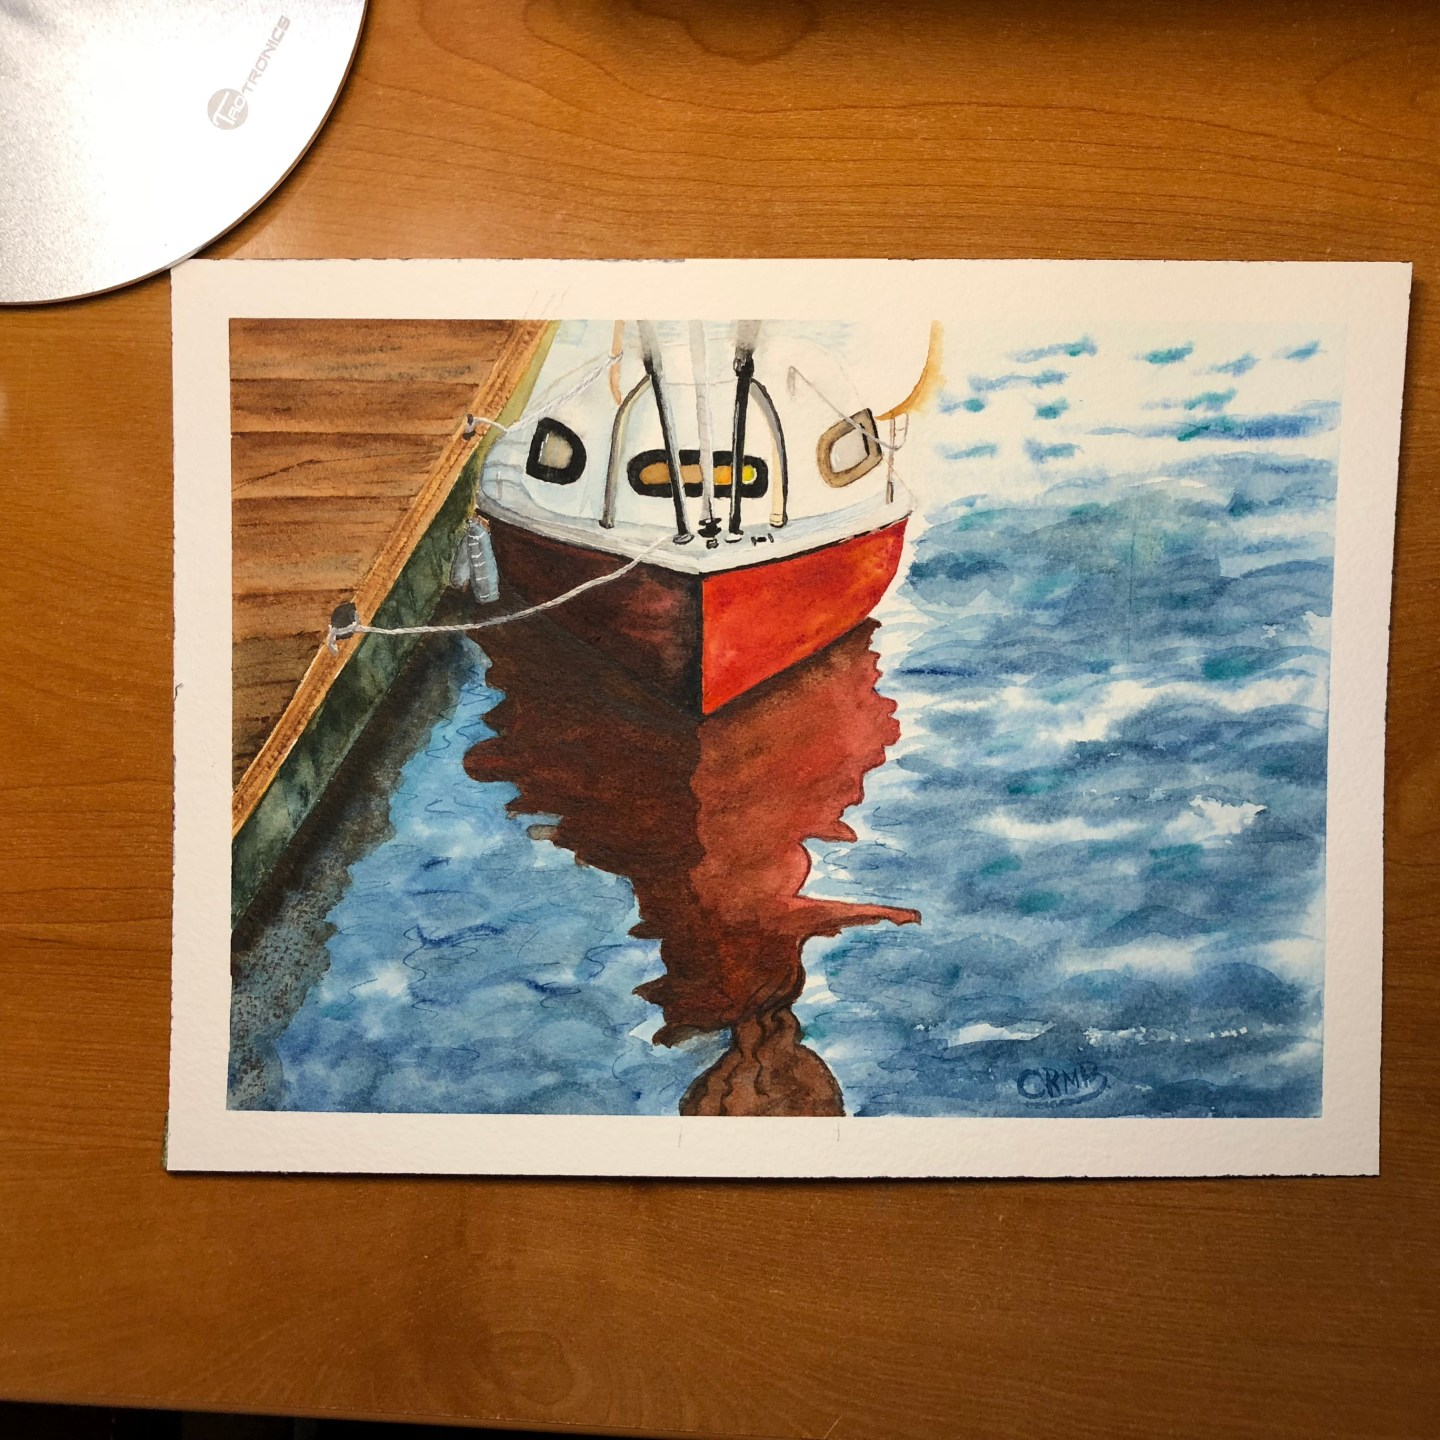 Watercolor – The Boat